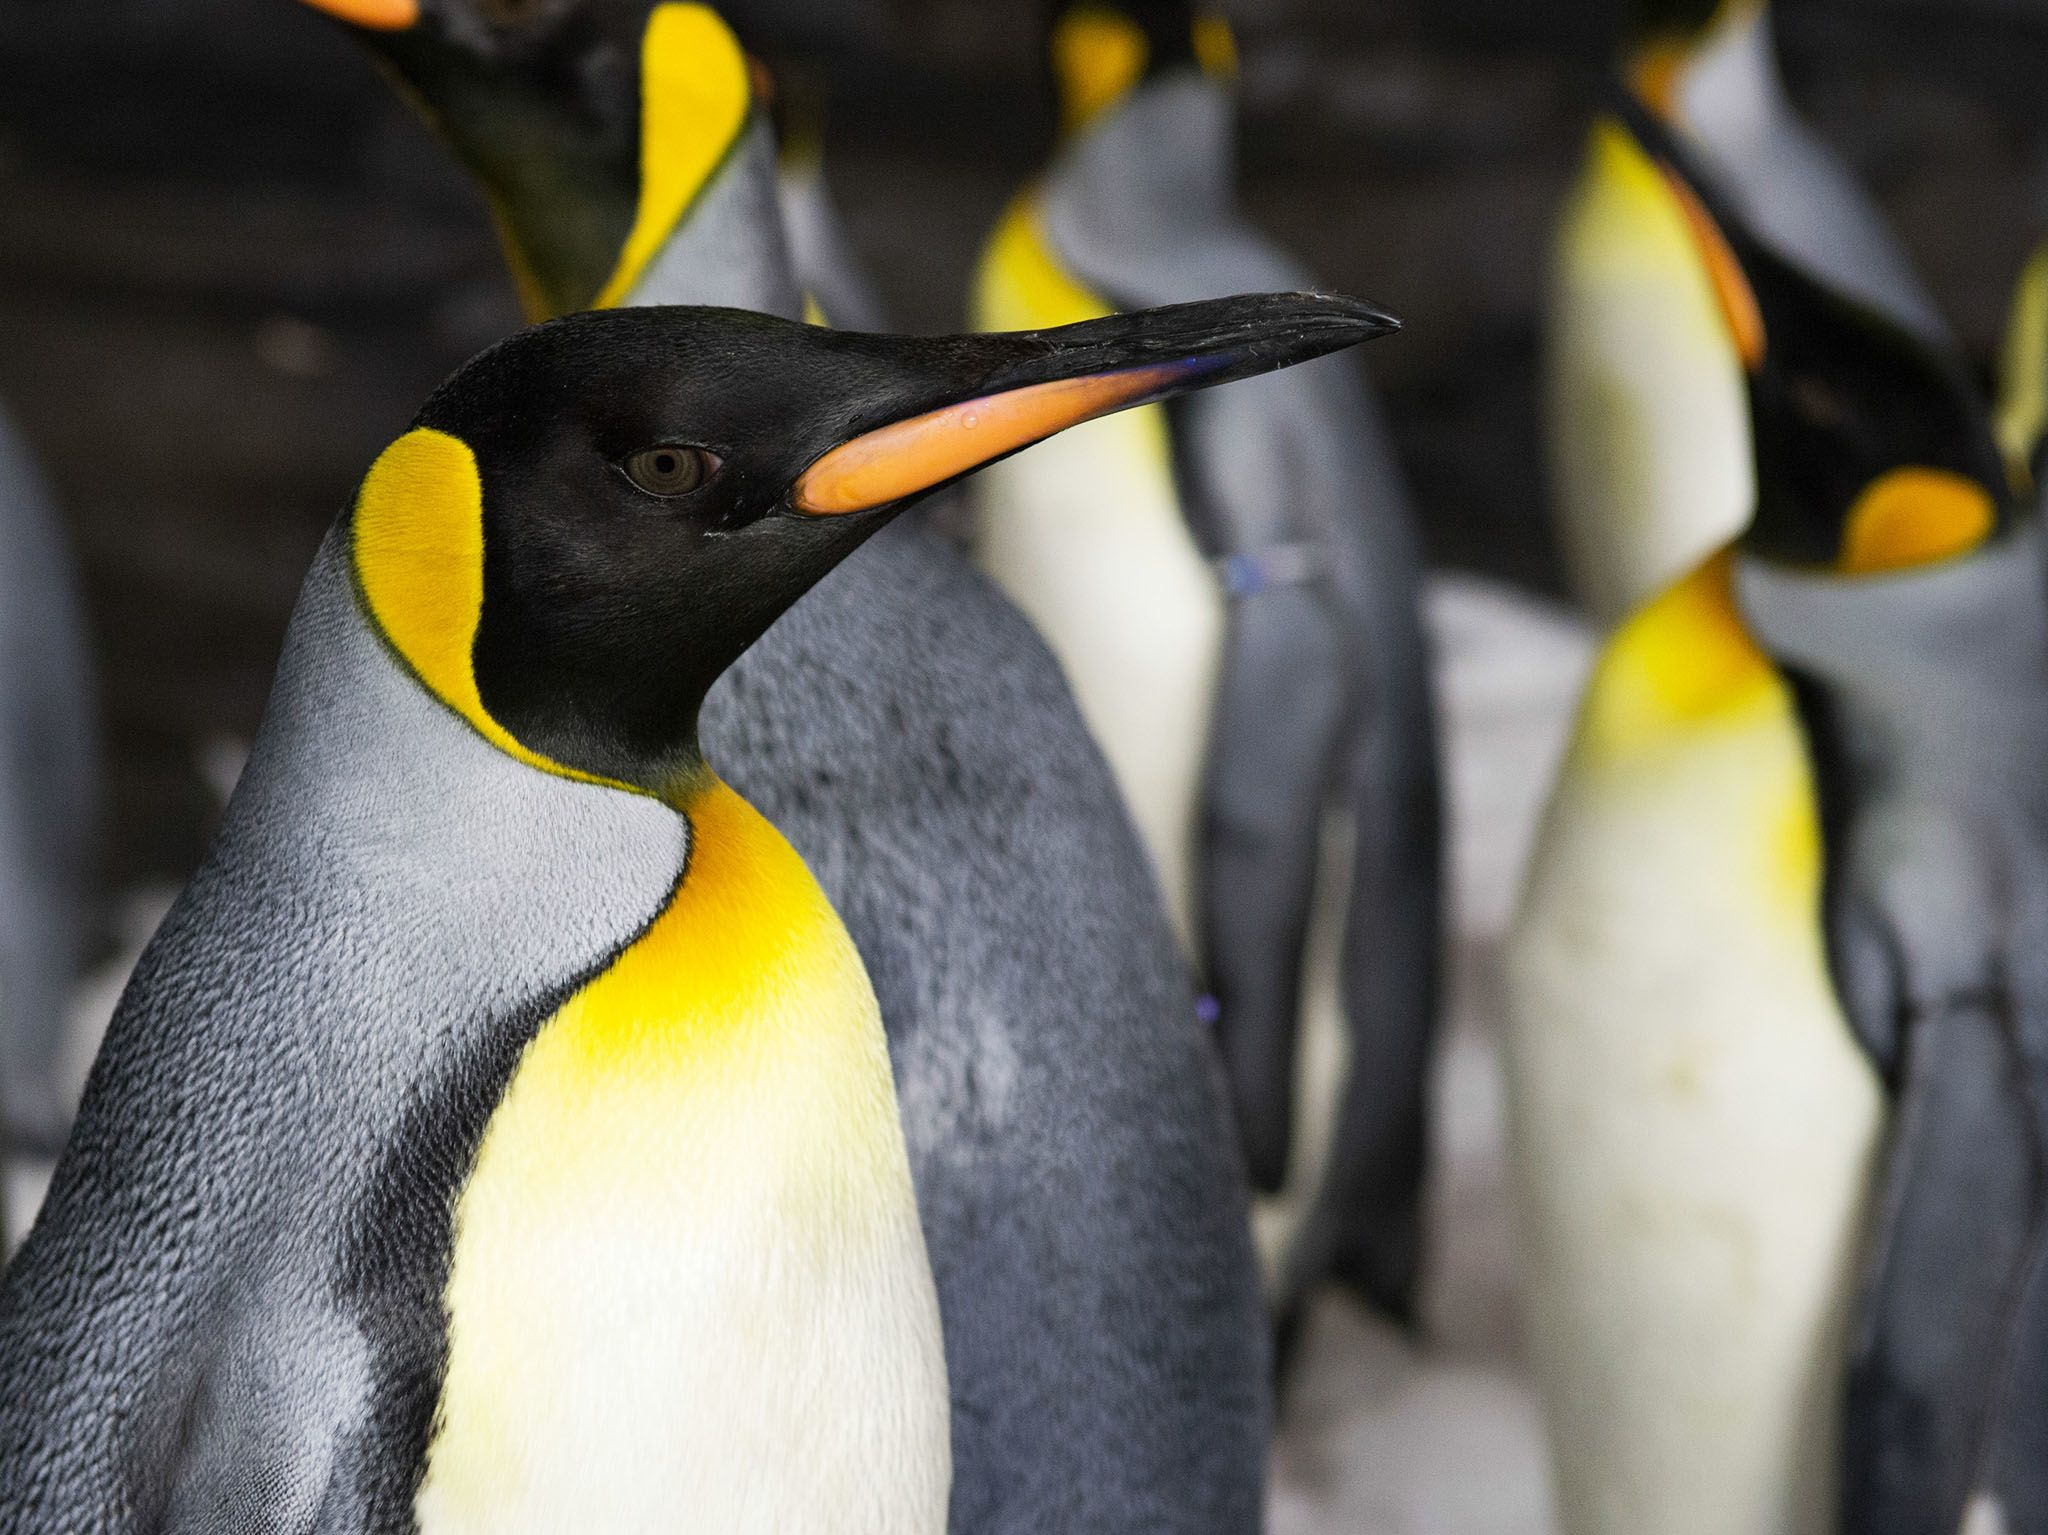 SeaWorld, Orlando, FL: Close up of  penguins in enclosure. This image is from Penguinpalooza. [Photo of the day - April 2017]